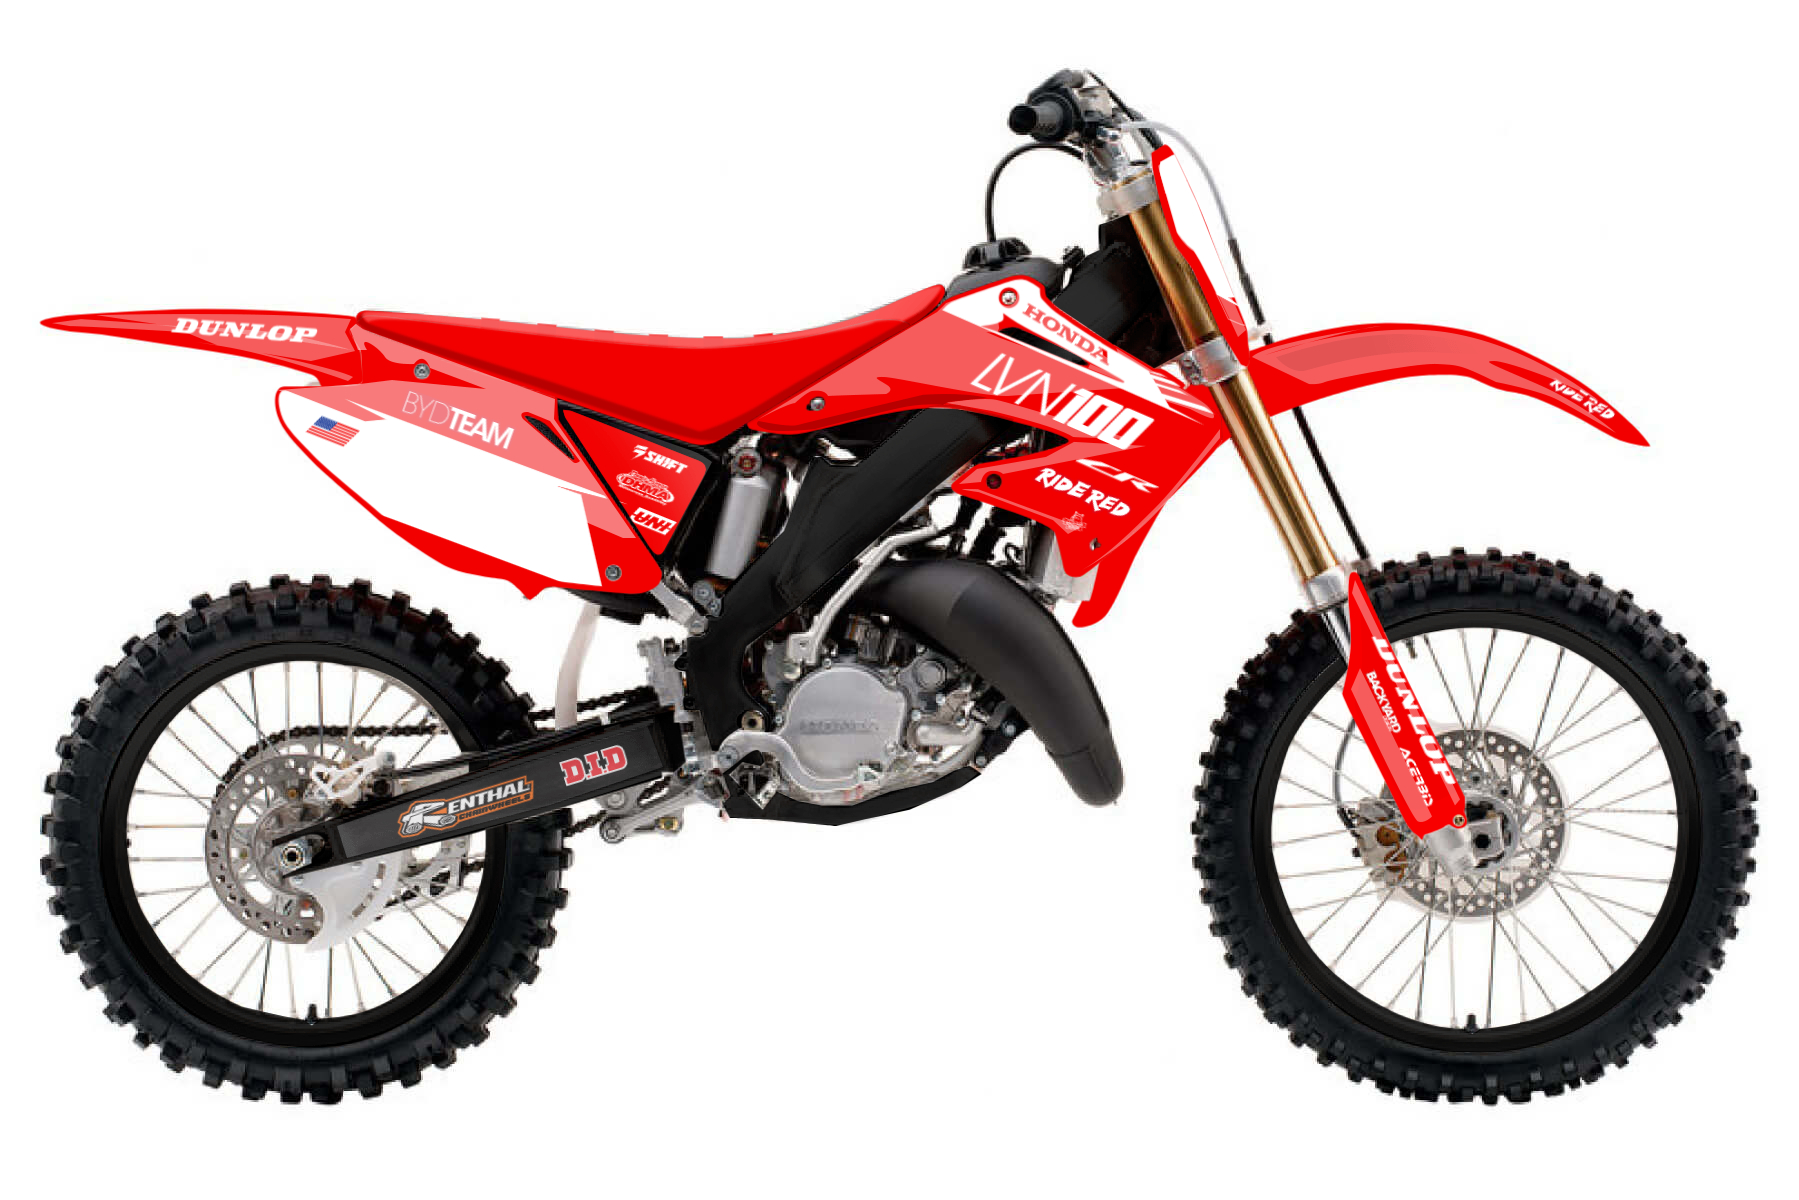 Honda CR 250 MX Graphic Kits  The CR 250 delivers a great performance and shows off its superior quality in every aspect. This bike guarantees amounts of fun and everything you need to face the competition.